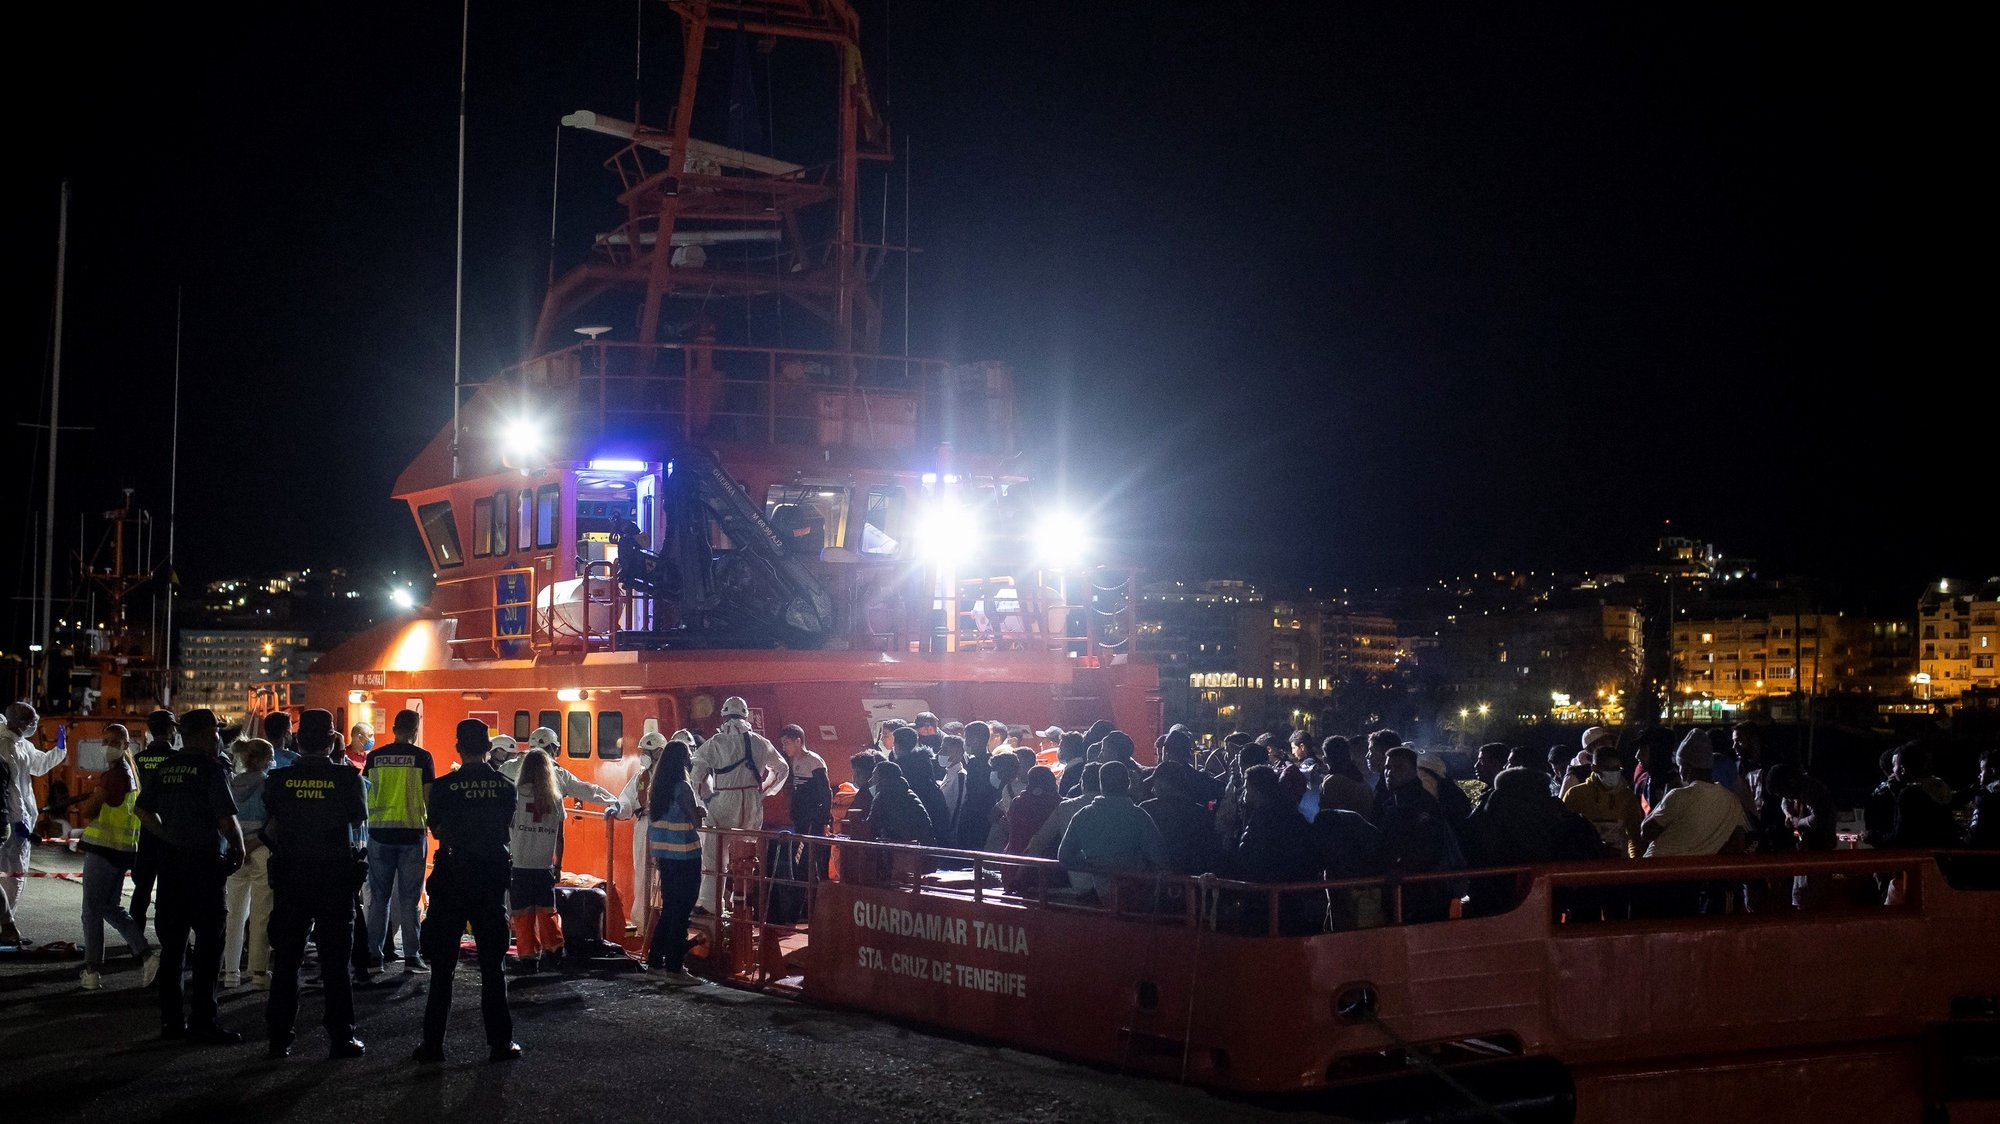 epa09468765 Some 120 migrants who were rescued aboard four canoes arrive at Arguineguin's Port in Gran Canaria, Canary Islands, Spain, 14 September 2021. A total of 400 migrants were rescued in the Canary islands within the last hours.  EPA/Javier Fuentes